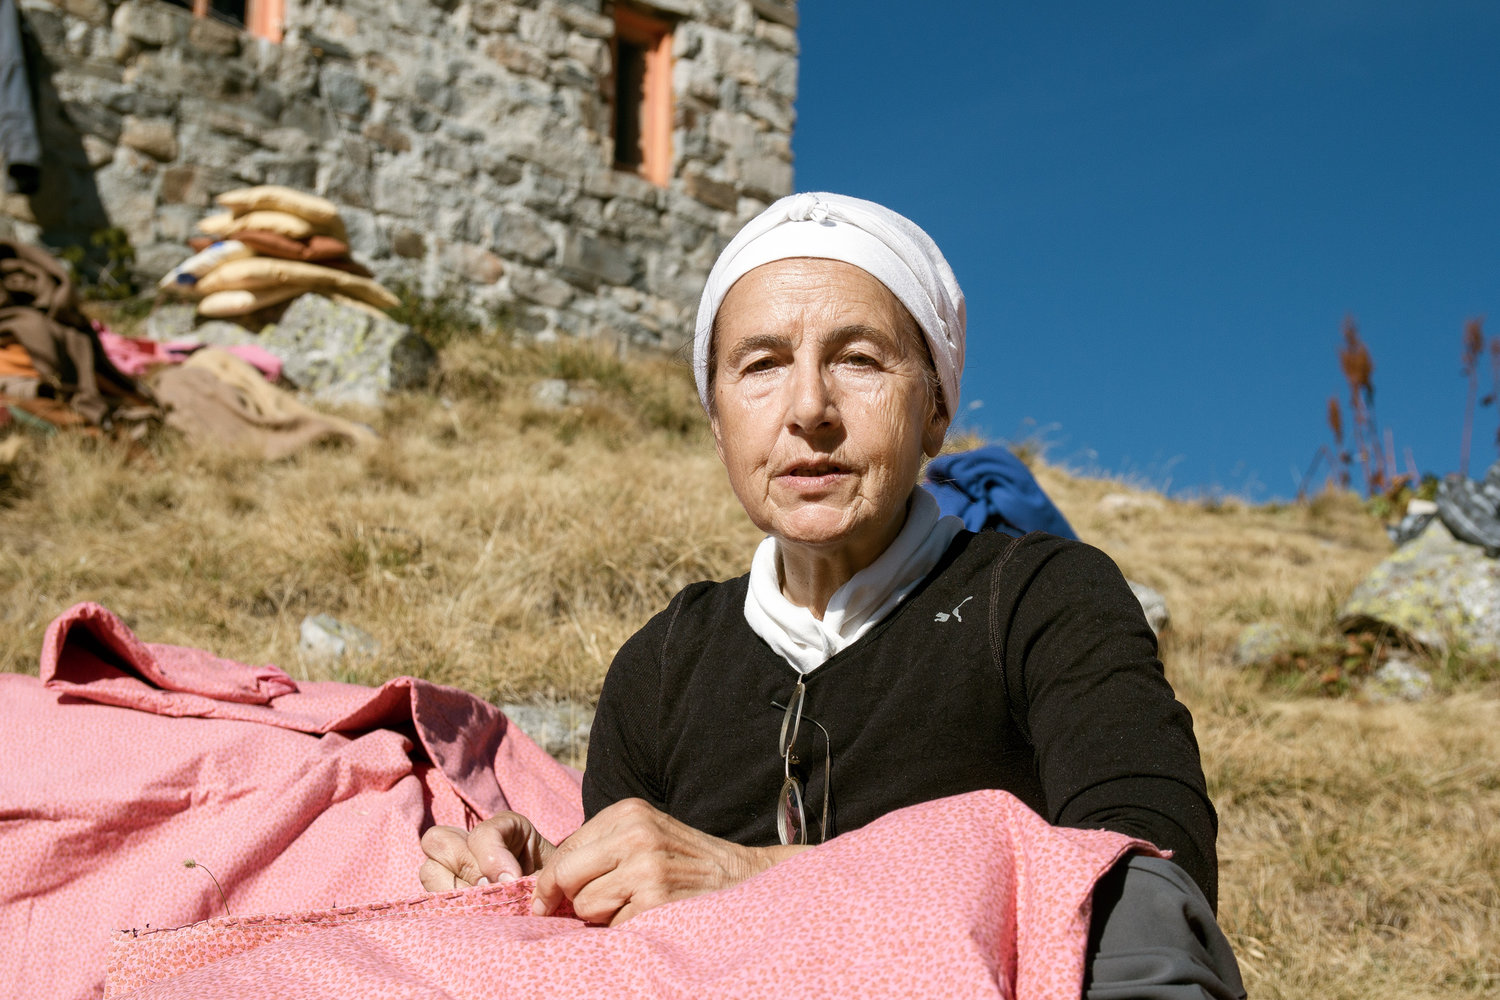 rila_strashnoto-ezero-scary-lake-4746-woman-sewing-hut-in-background.jpg